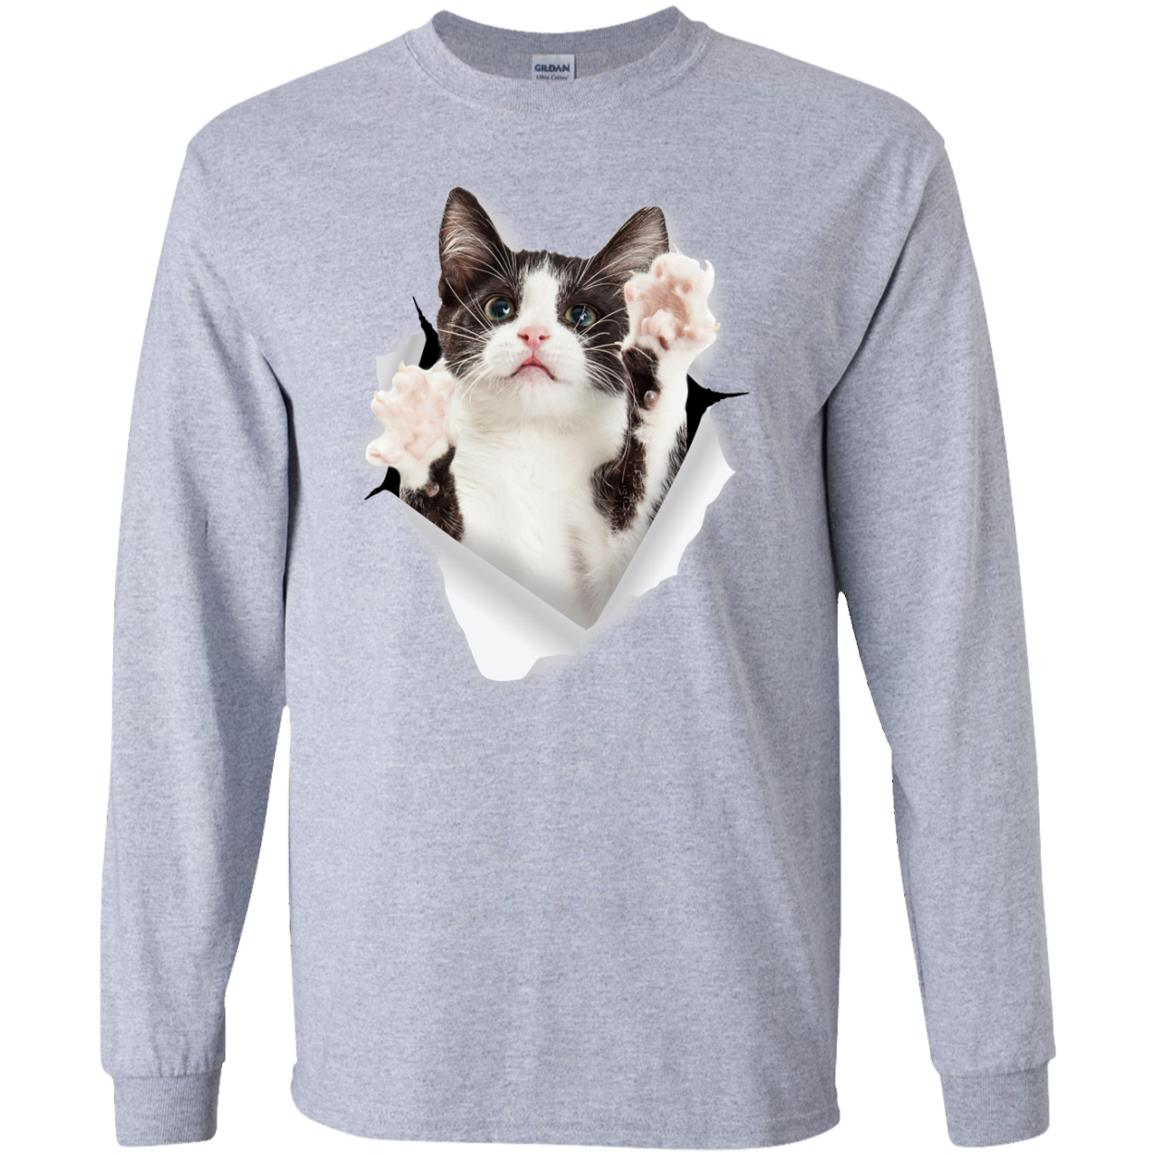 Black & White Reaching Cat Long Sleeve Ultra Cotton T-Shirt